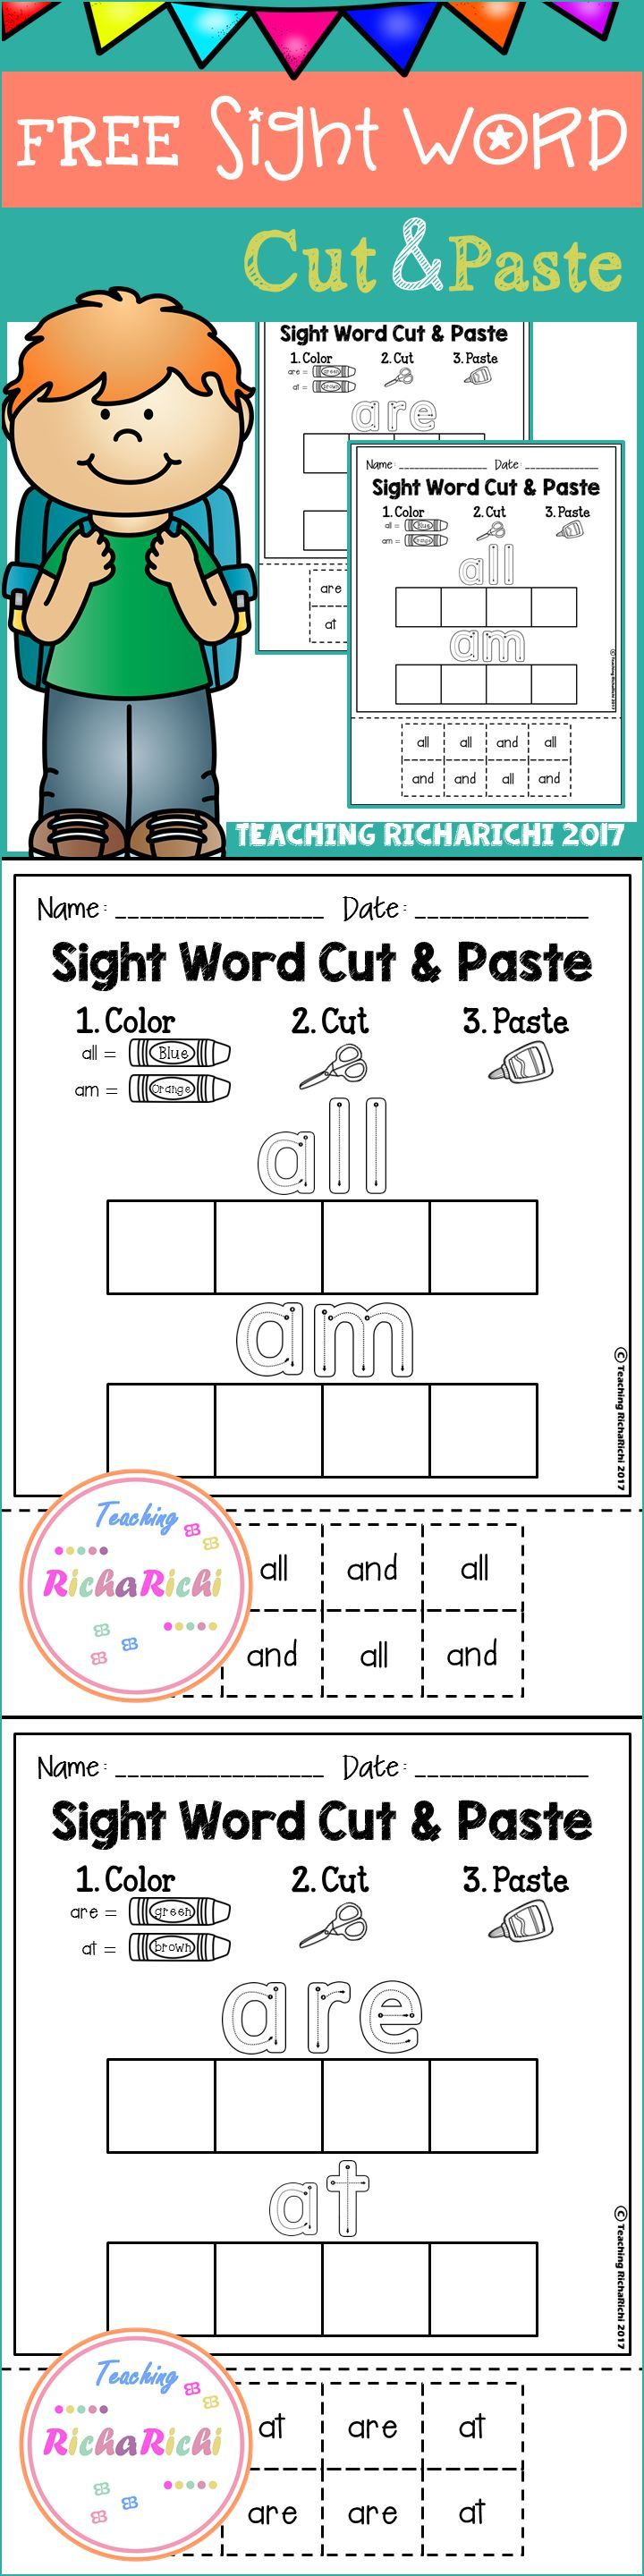 Pin On Ela Ideas And Resources Grades K 6